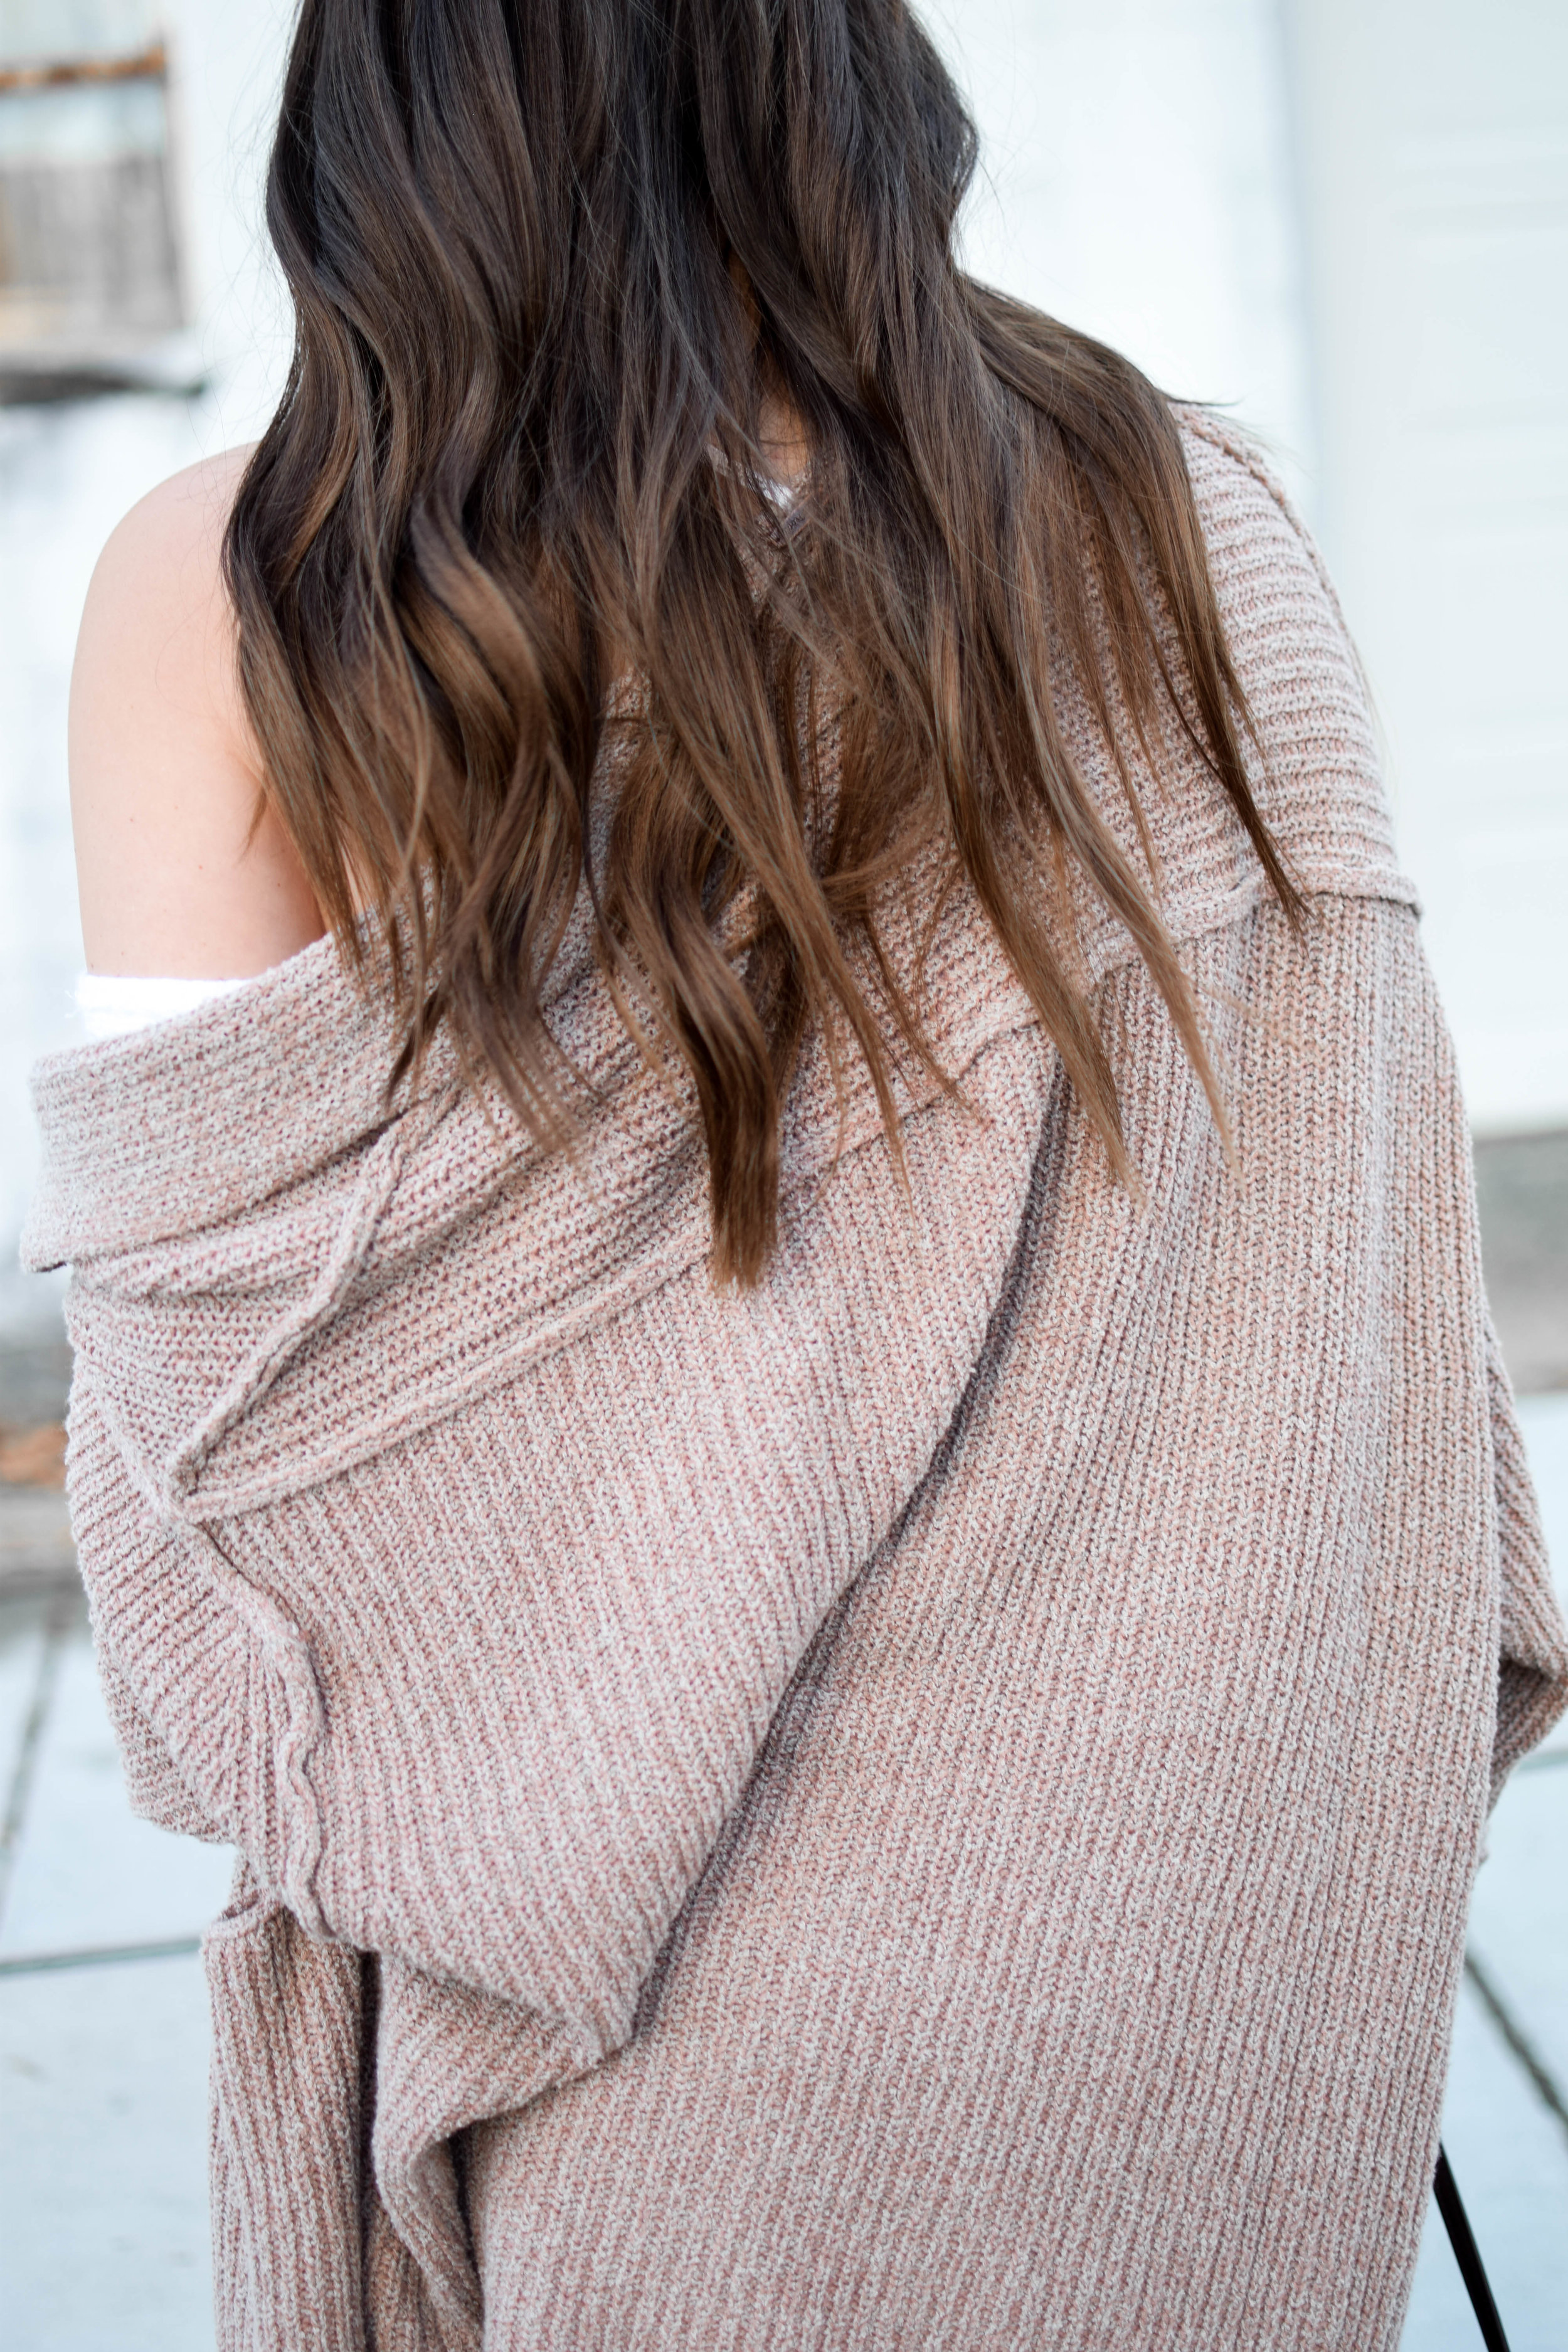 fall fashion / fall outfit idea / fall outfit inspiration / free people thermal / free people cardigan / sweater weather / hair goals / dark hair for fall / fall feels / fall vibes